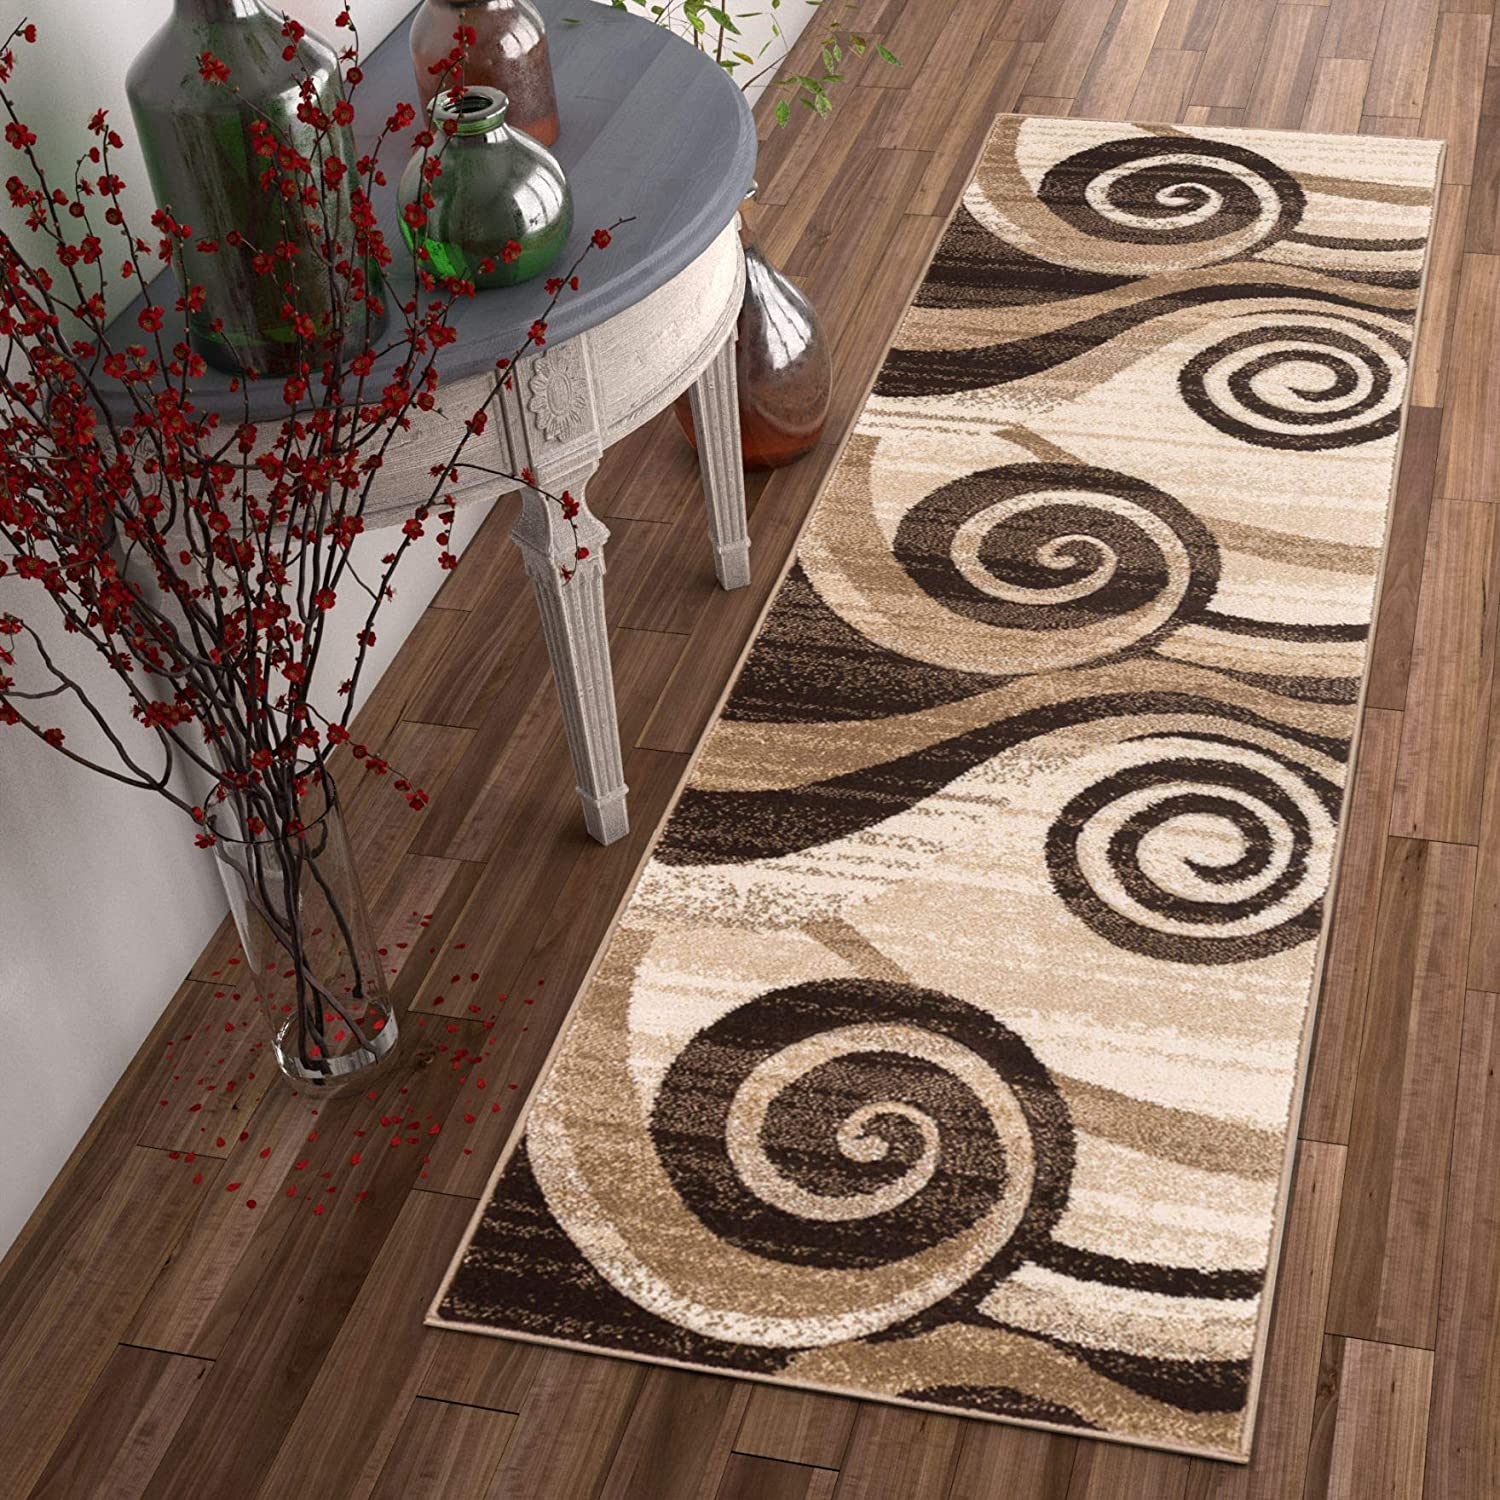 Desert Swirl Brown Beige Modern 2x7 2 X 7 Runner Geometric Comfy Casual Spiral Hand Carved Area Rug Easy To Clean Stain Fade Resistant Contemporary Thick Soft Plush